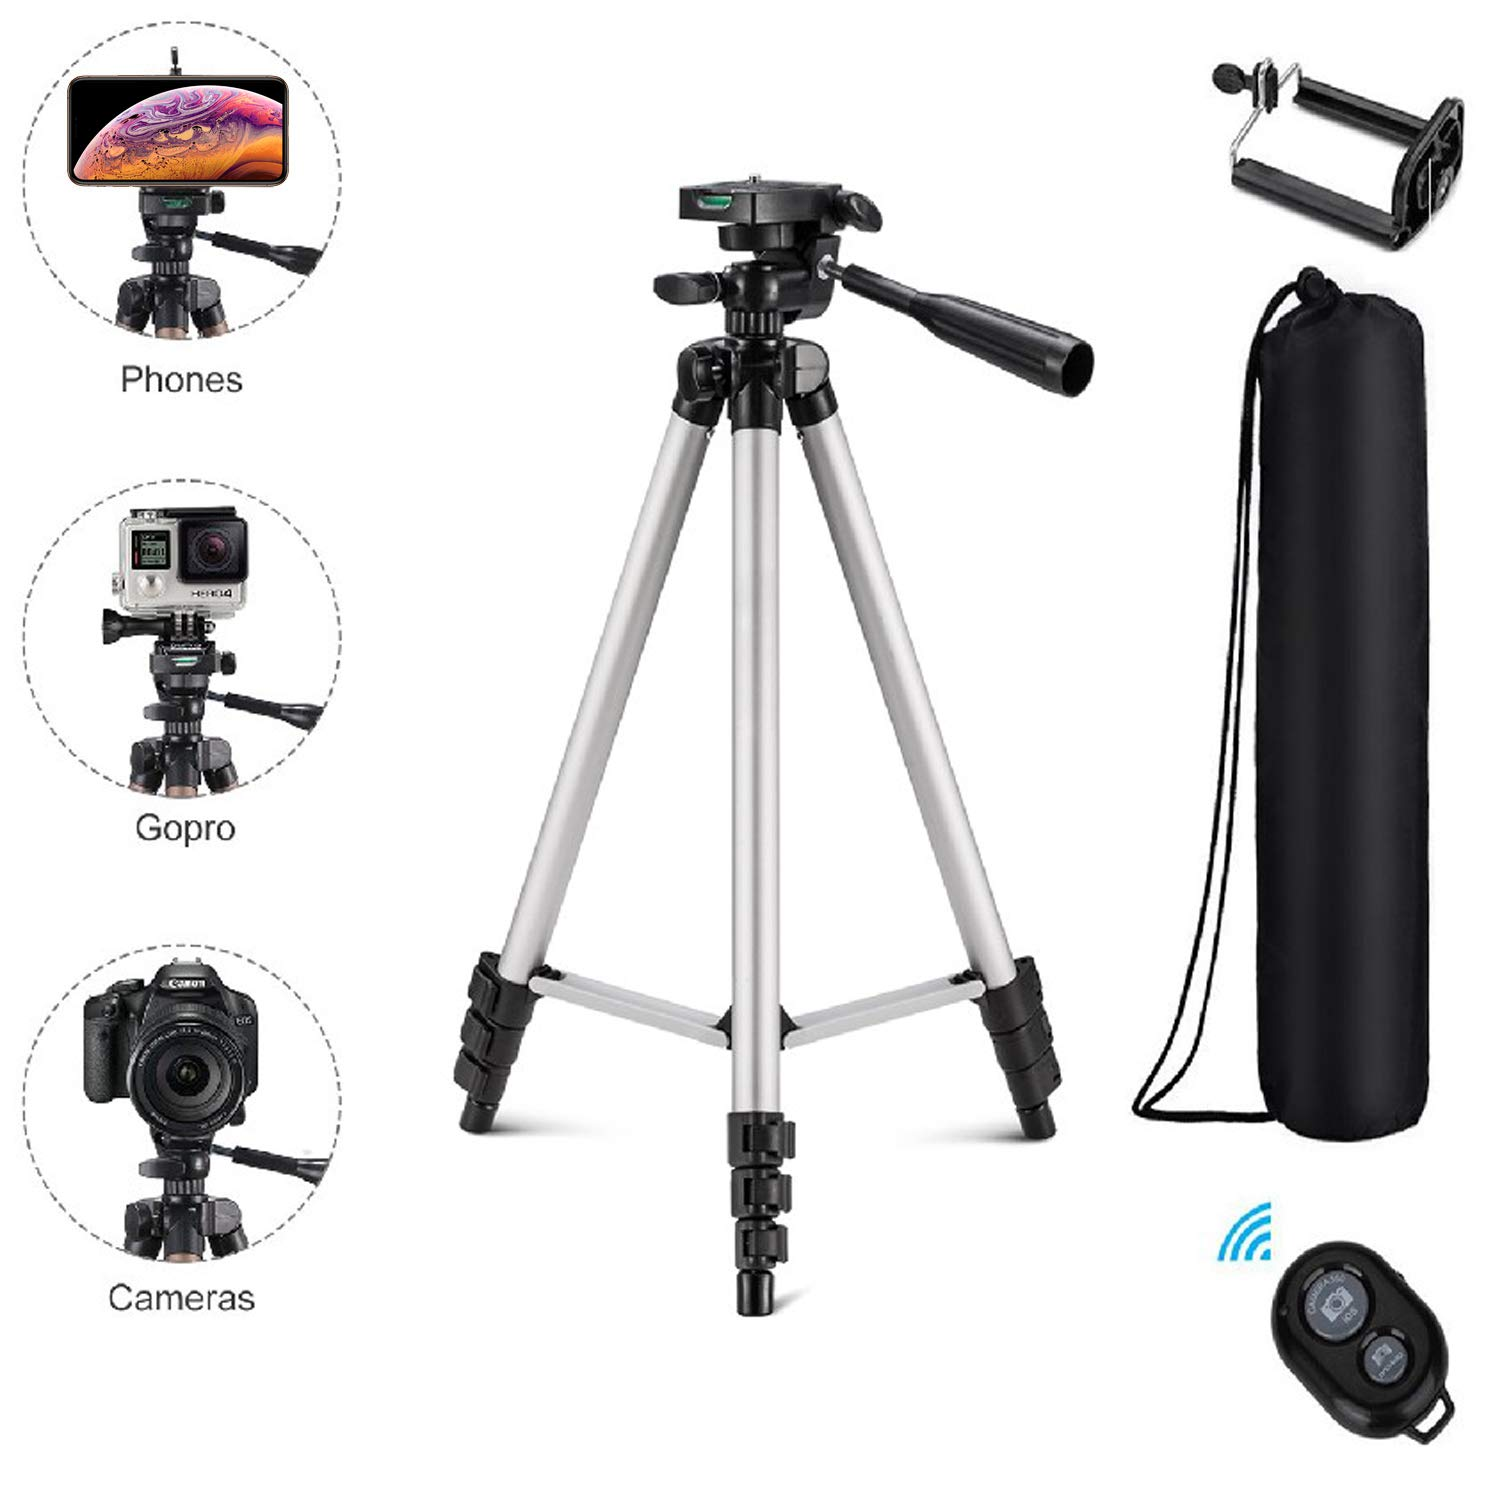 Eocean Tripod, 50-inch Video Tripod for Cellphone and Camera, Universal Tripod with Wireless Remote & Cellphone Holder Mount, Compatible with iPhone Xs/Xr/Xs Max/X/8/Galaxy Note 9/S9/Huawei/Google by Eocean